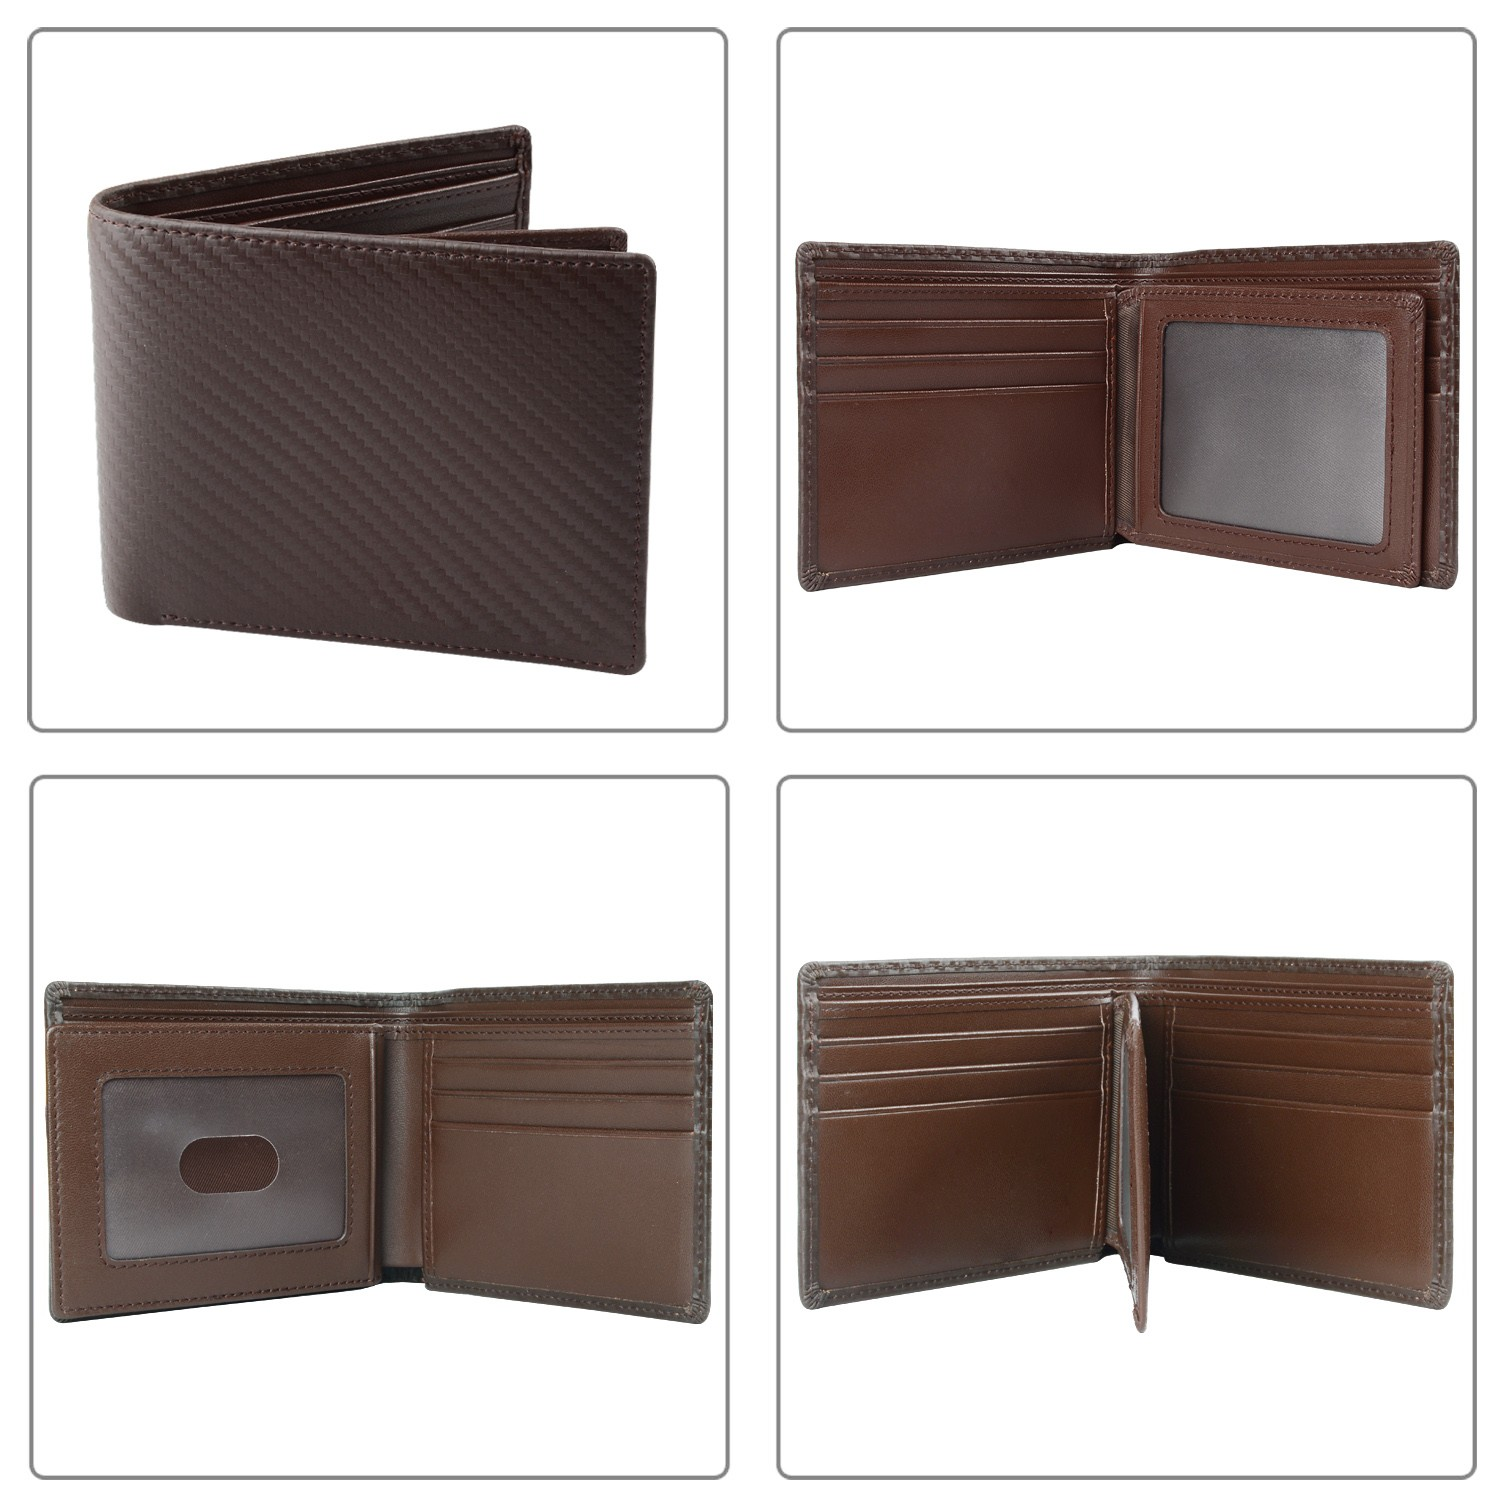 AIVI multi-function custom leather wallets for sale for men-9